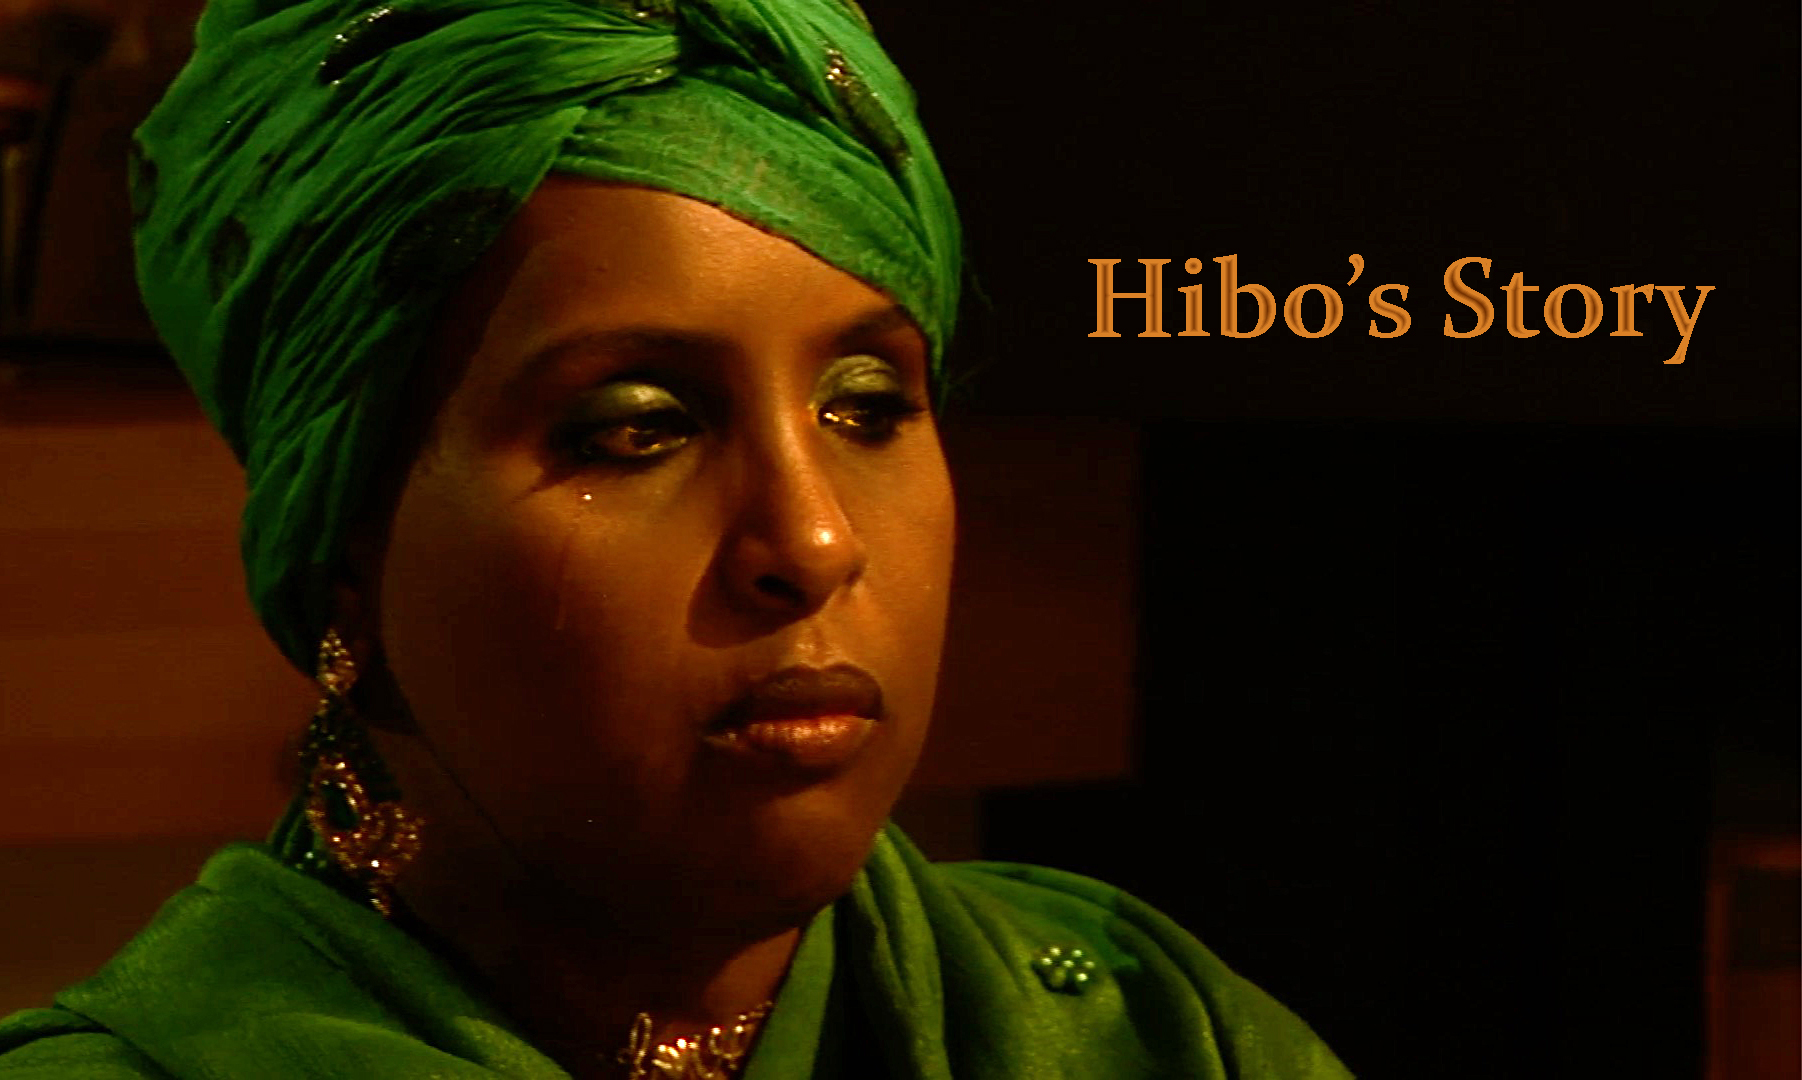 I can speak about my trauma and save other girls from being cut.' - - HIBO WARDERE